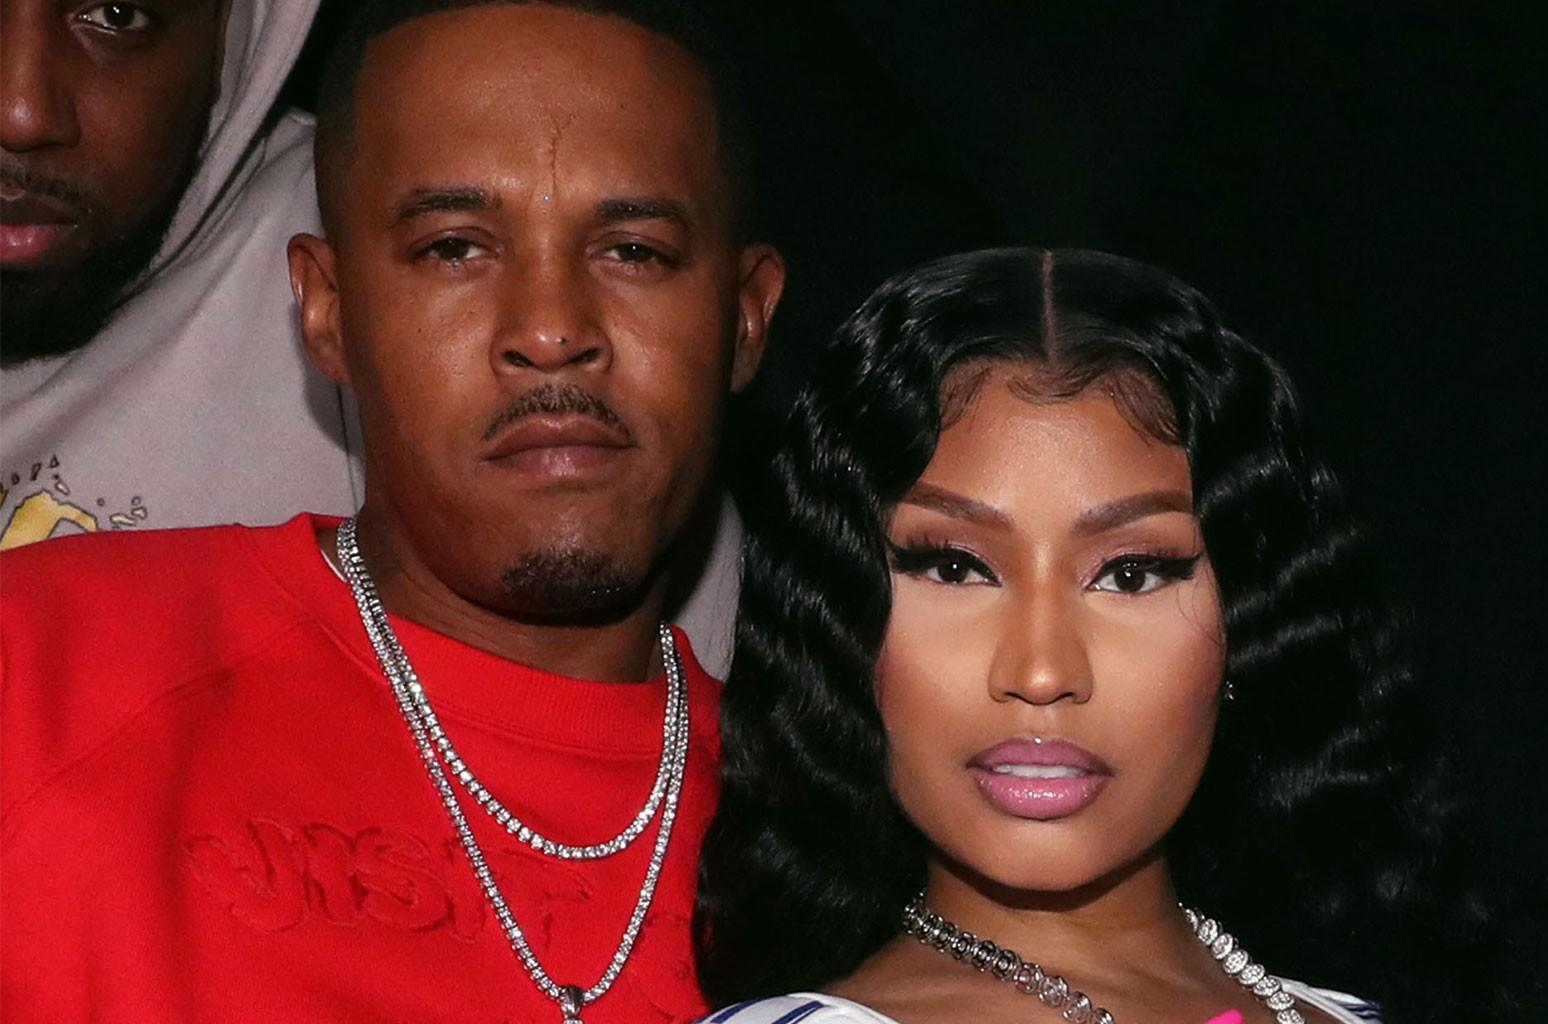 Kenneth Petty Pleads With Judge To Let Him Be There For Nicki Minaj When She Goes Into Labor Amid Legal Problems